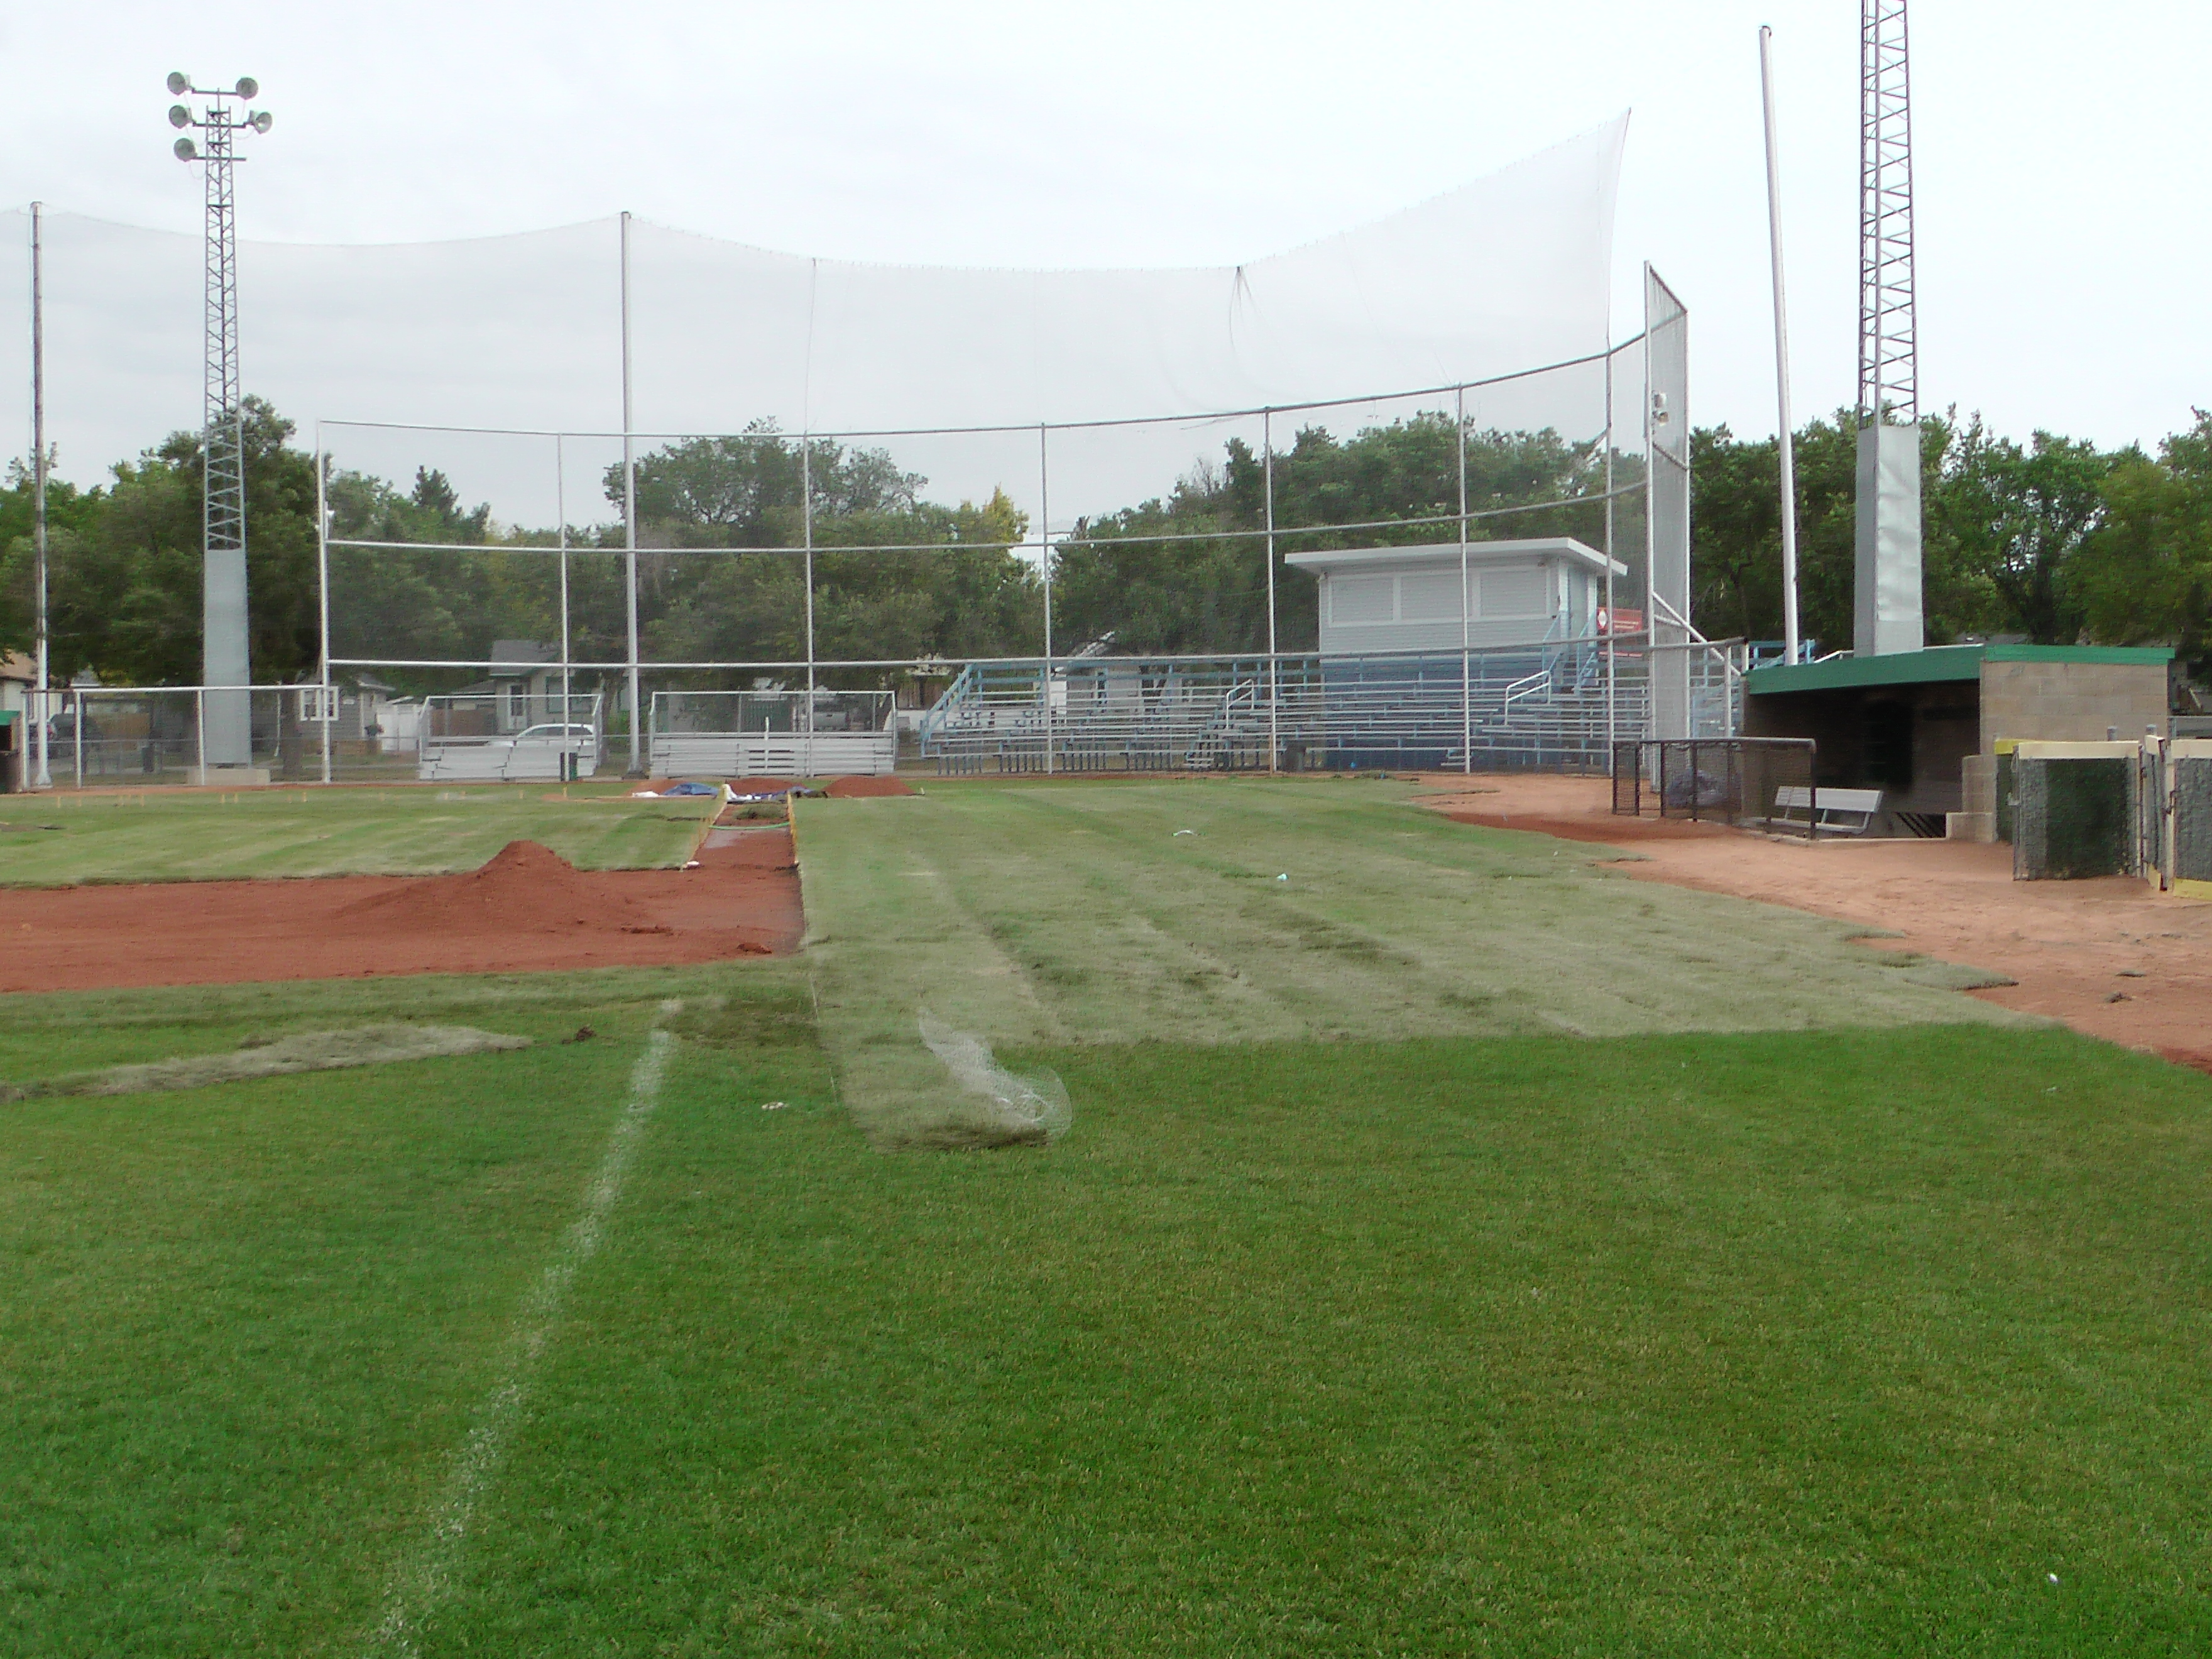 Sept 7 & 8 2018, Optimist Park Field Renovations, sod down being watered - Image 10